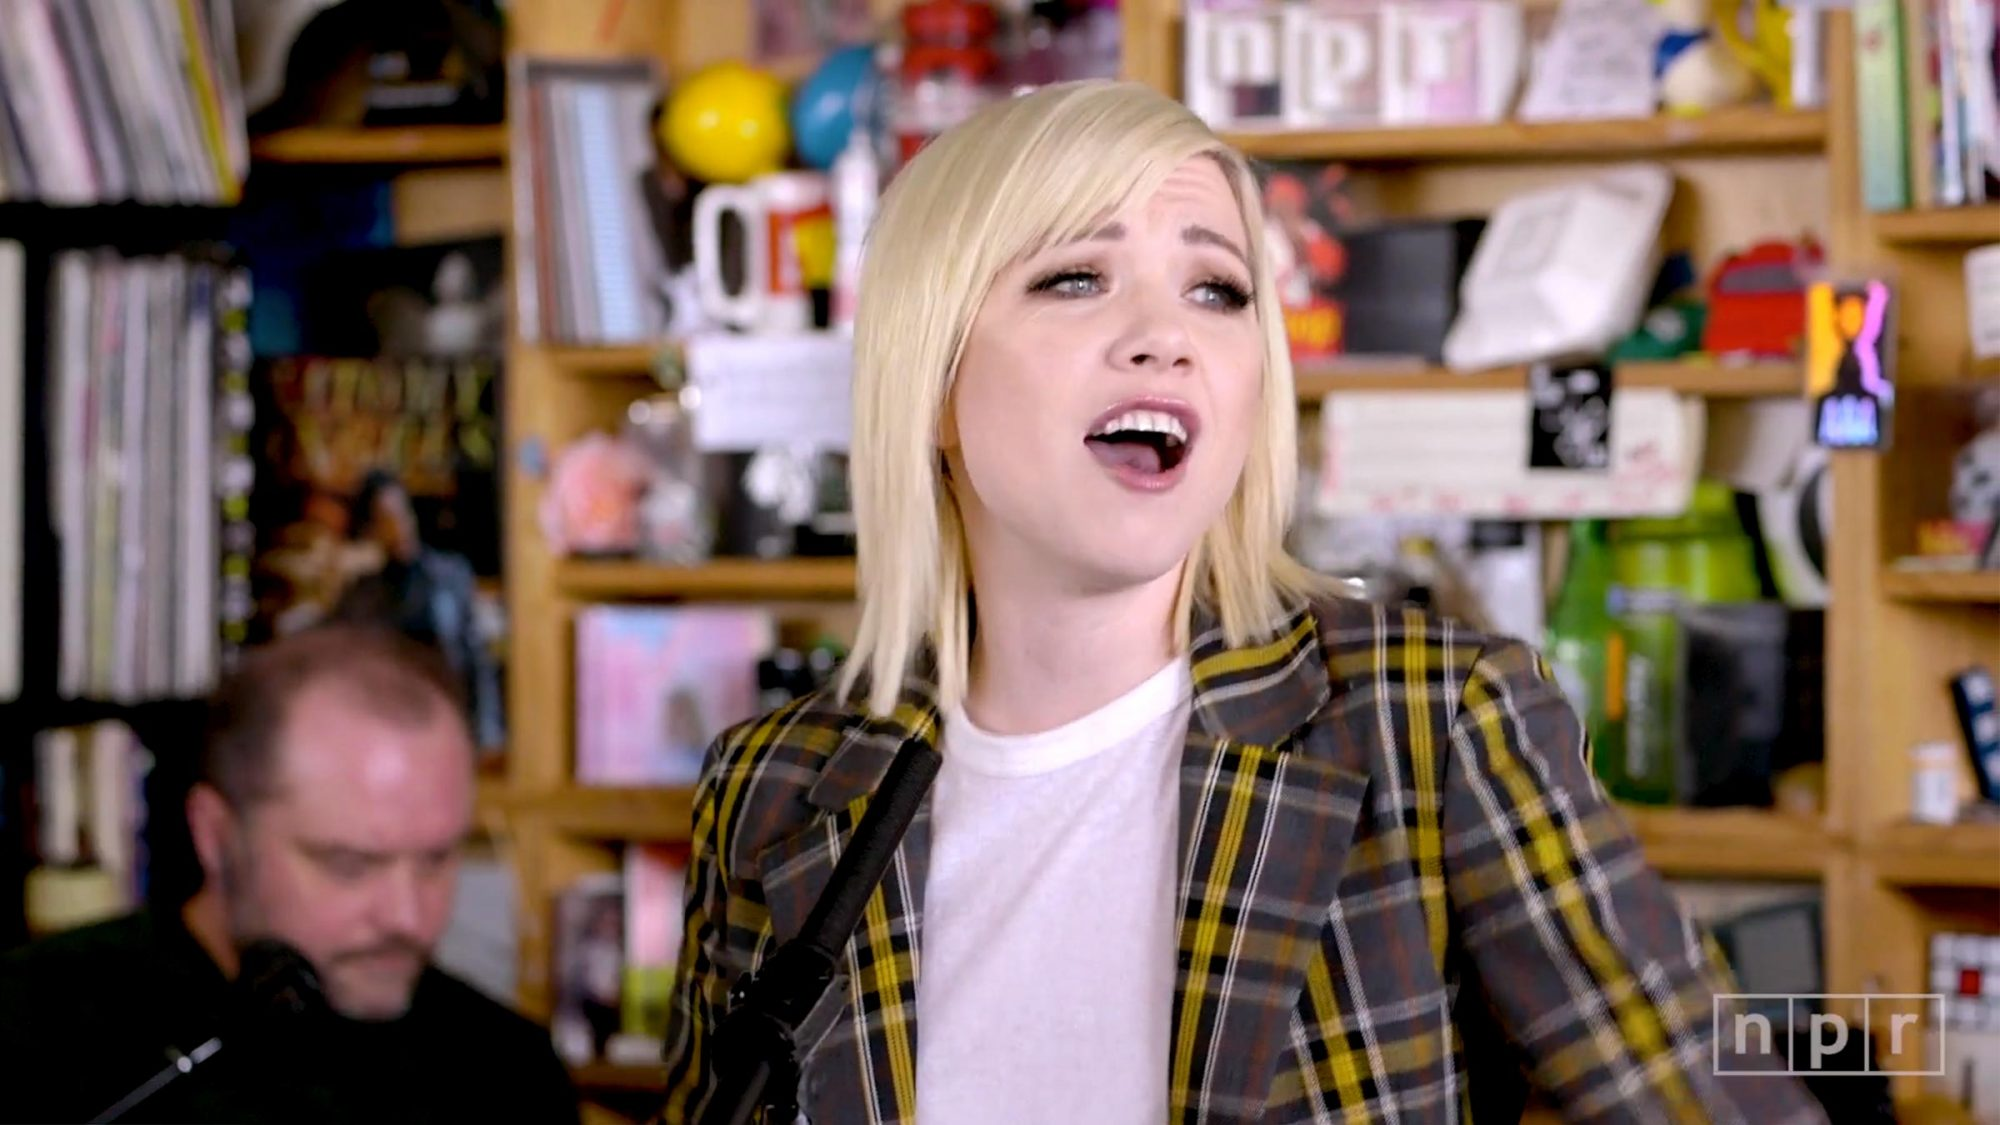 Carly Rae Jepsen: Tiny Desk Concert (screen grab)